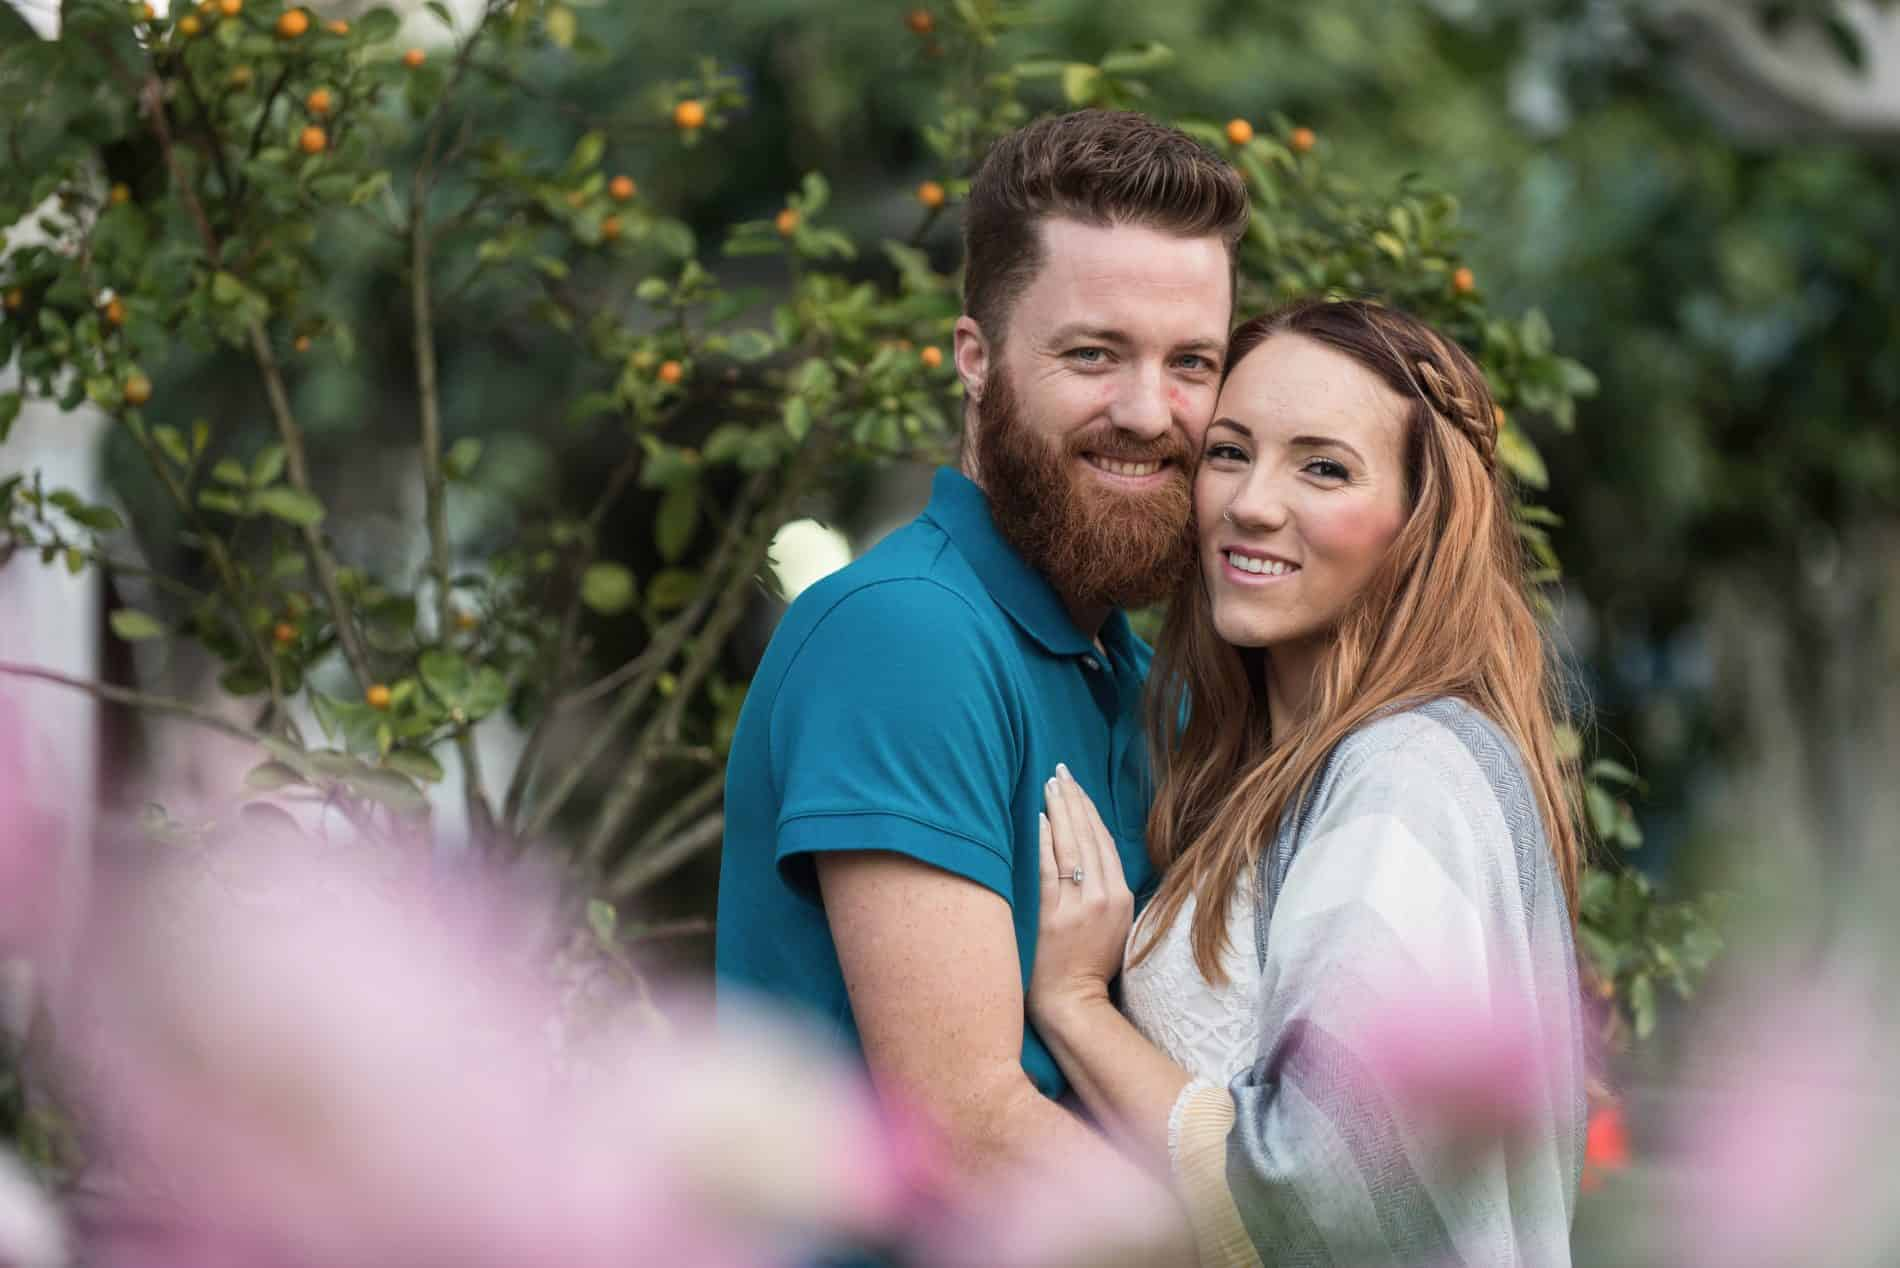 Summer Smiles during a Winter Garden Engagement Session